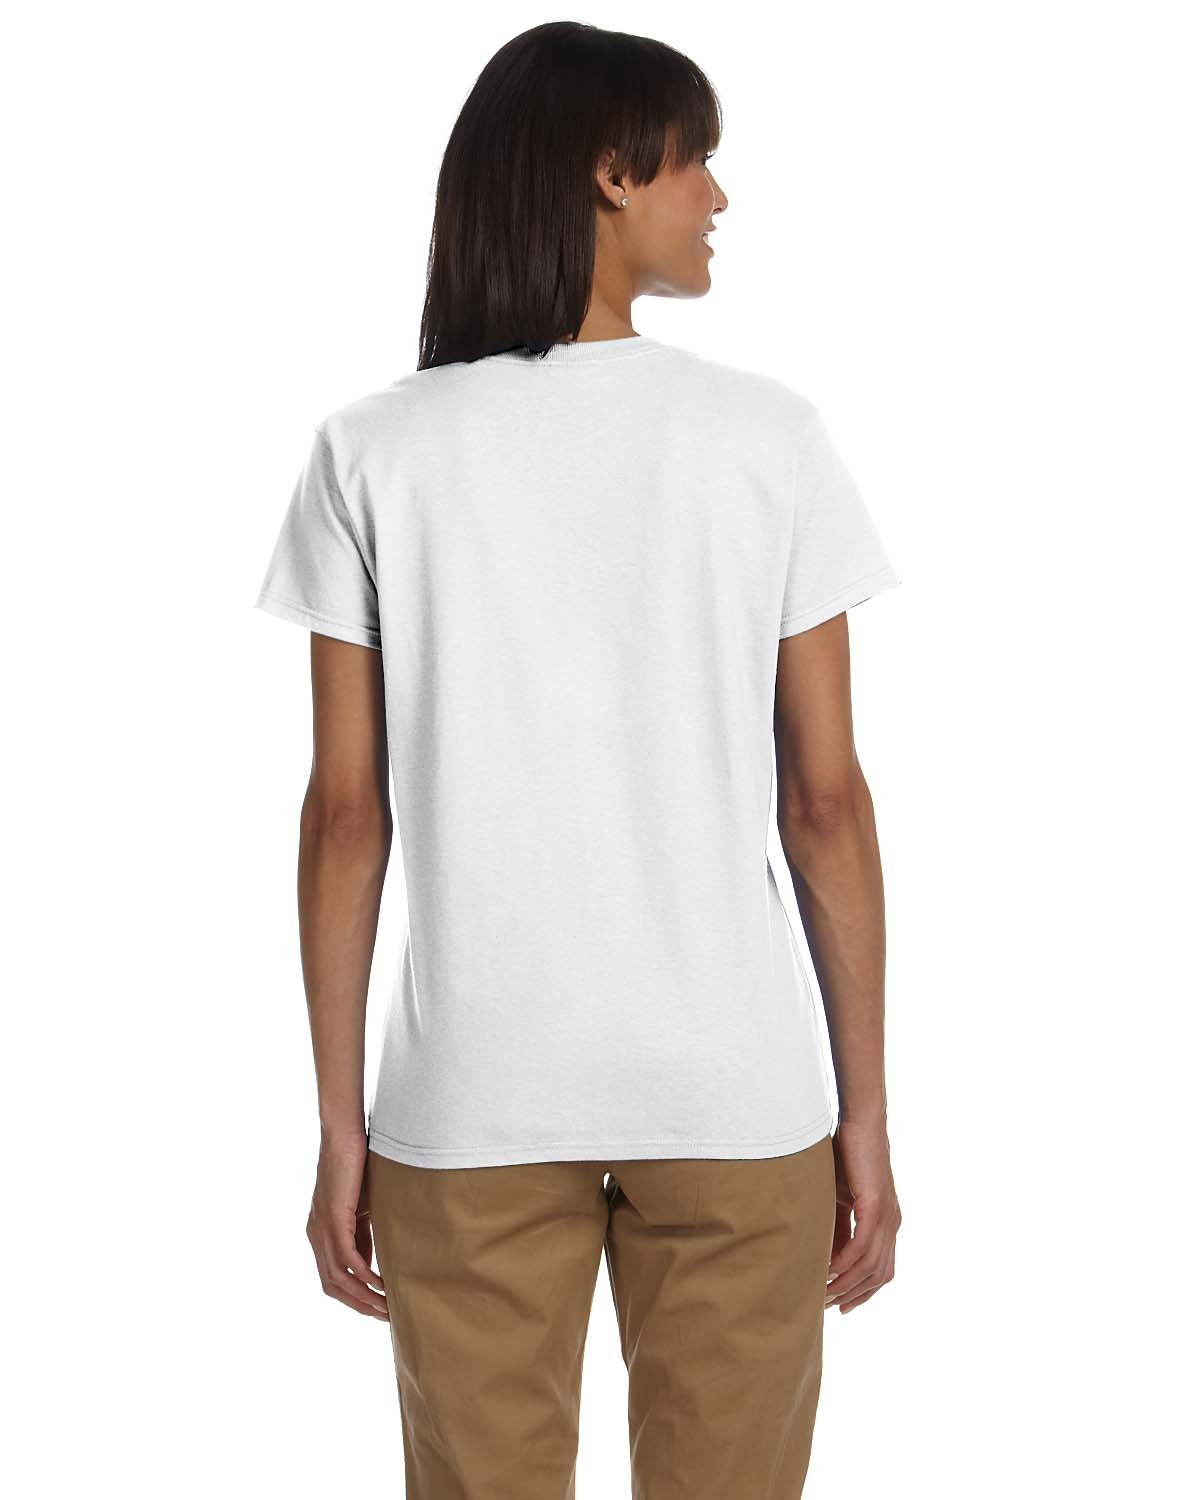 Blank tshirt template search results calendar 2015 for Blank tee shirts com